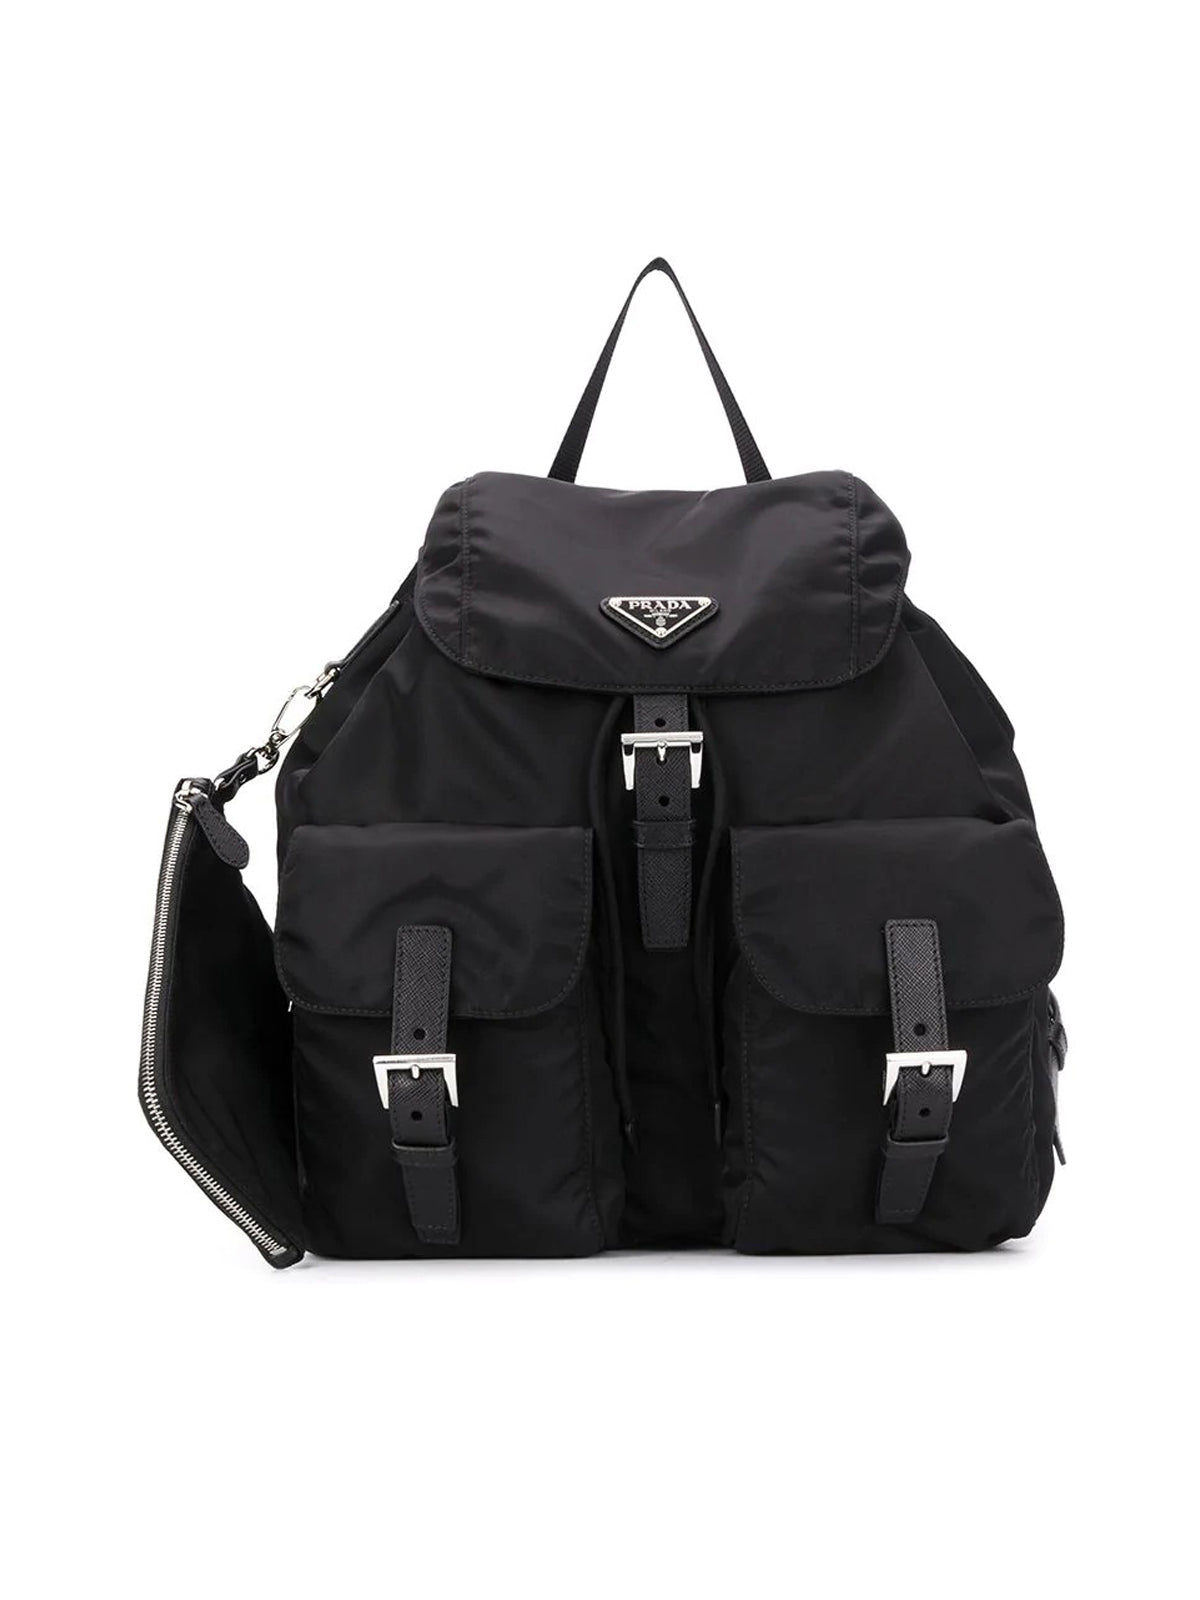 buckled nylon backpack